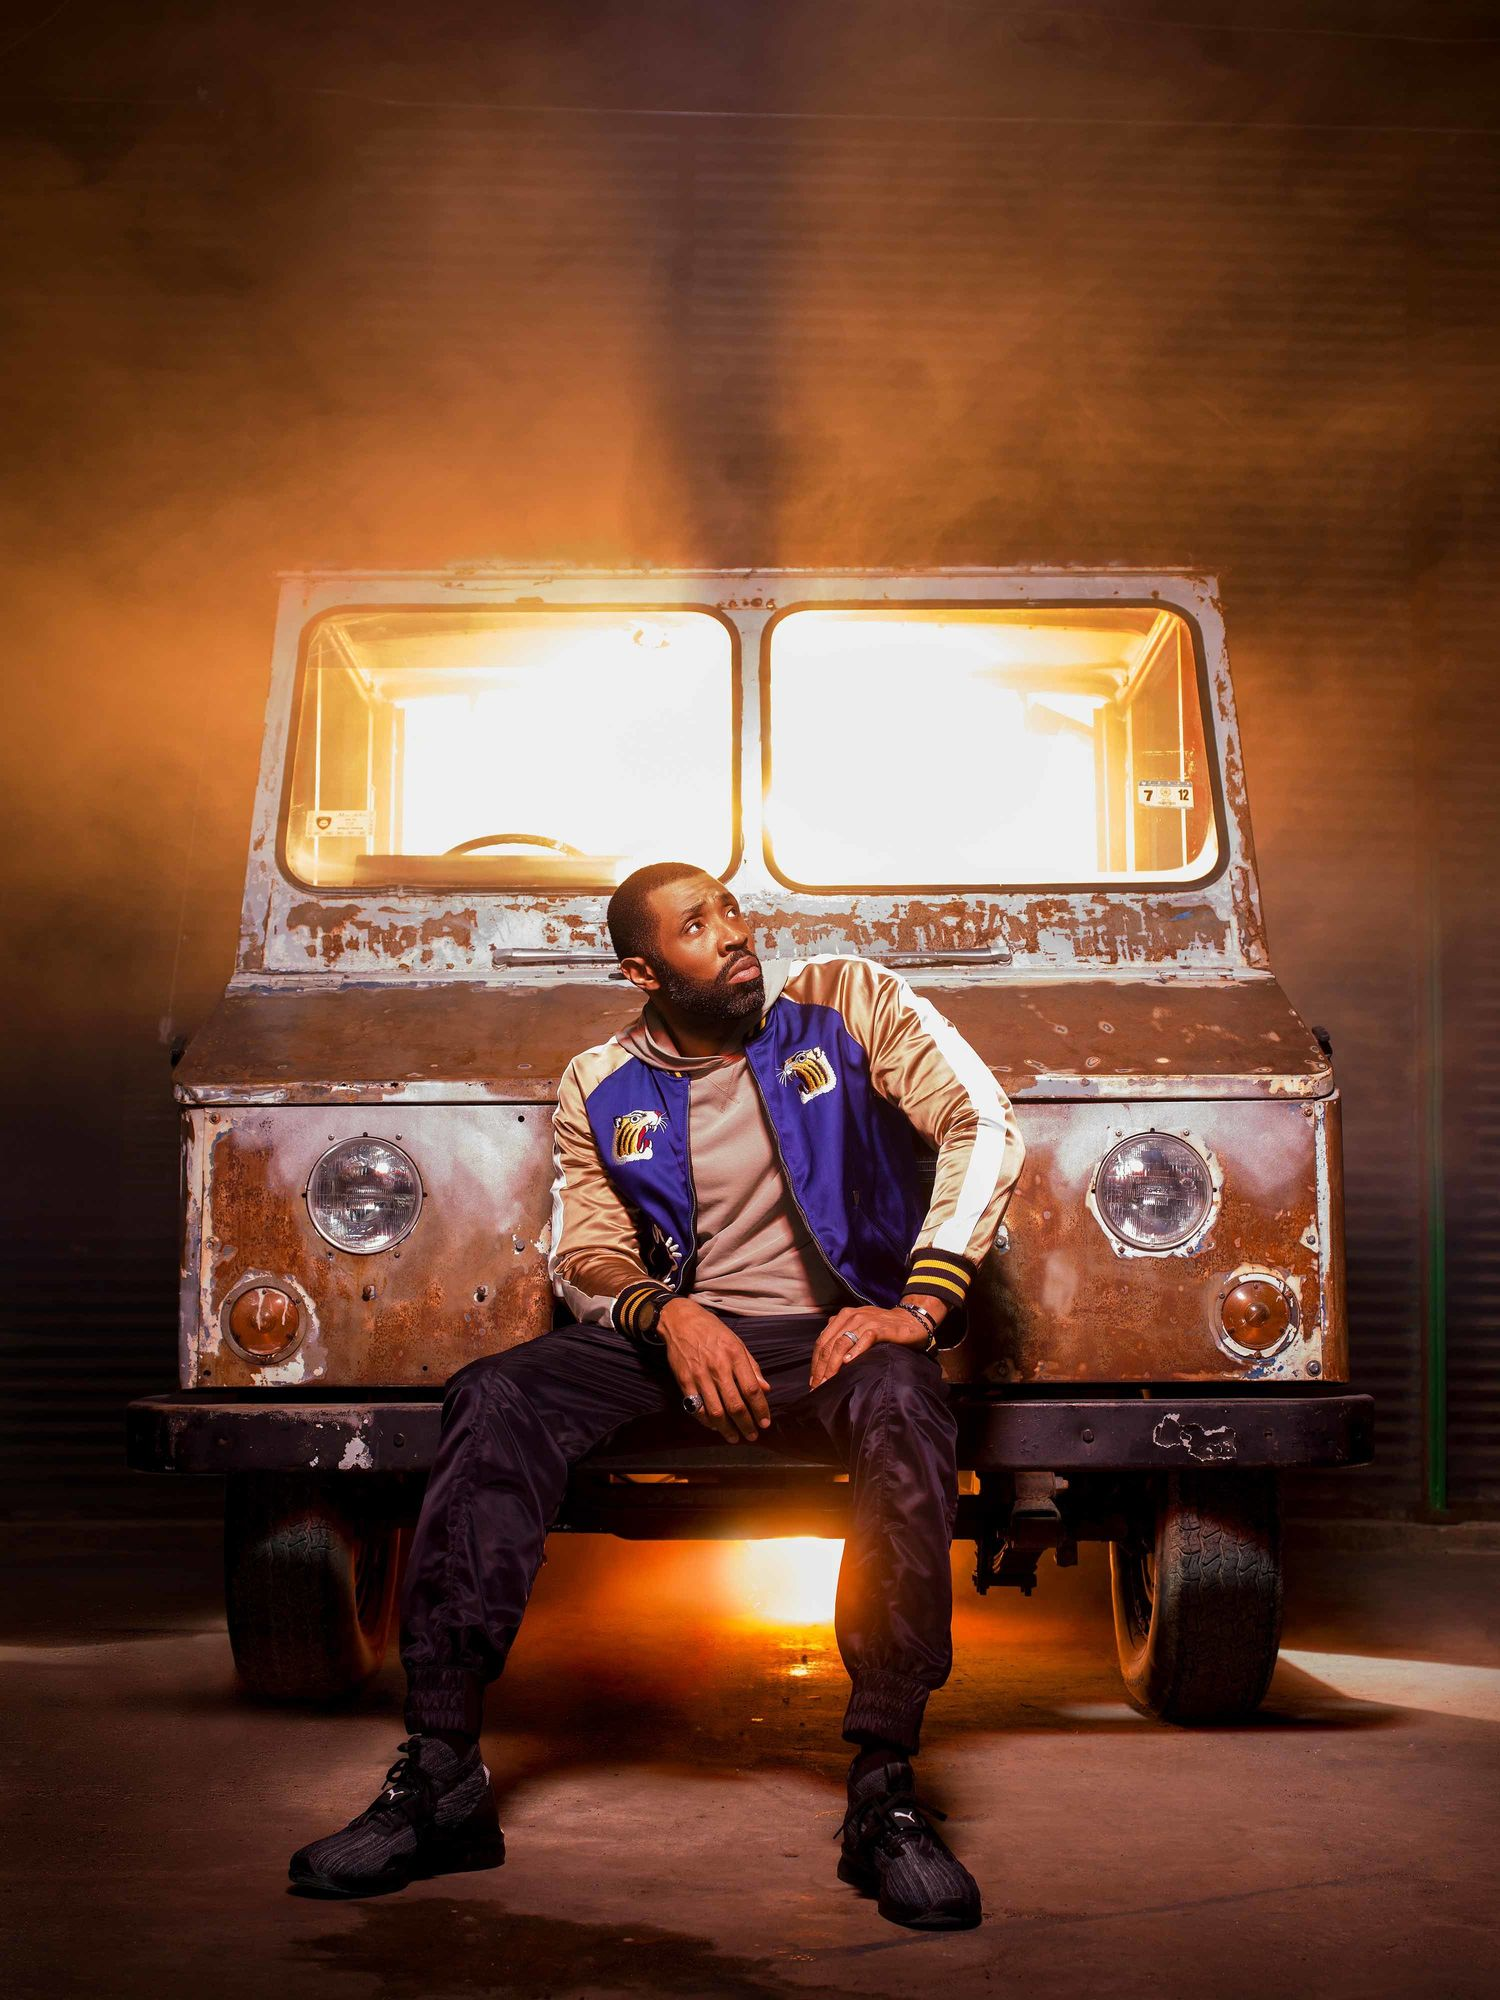 Cress Williams sitting on the front of a rusted truck.